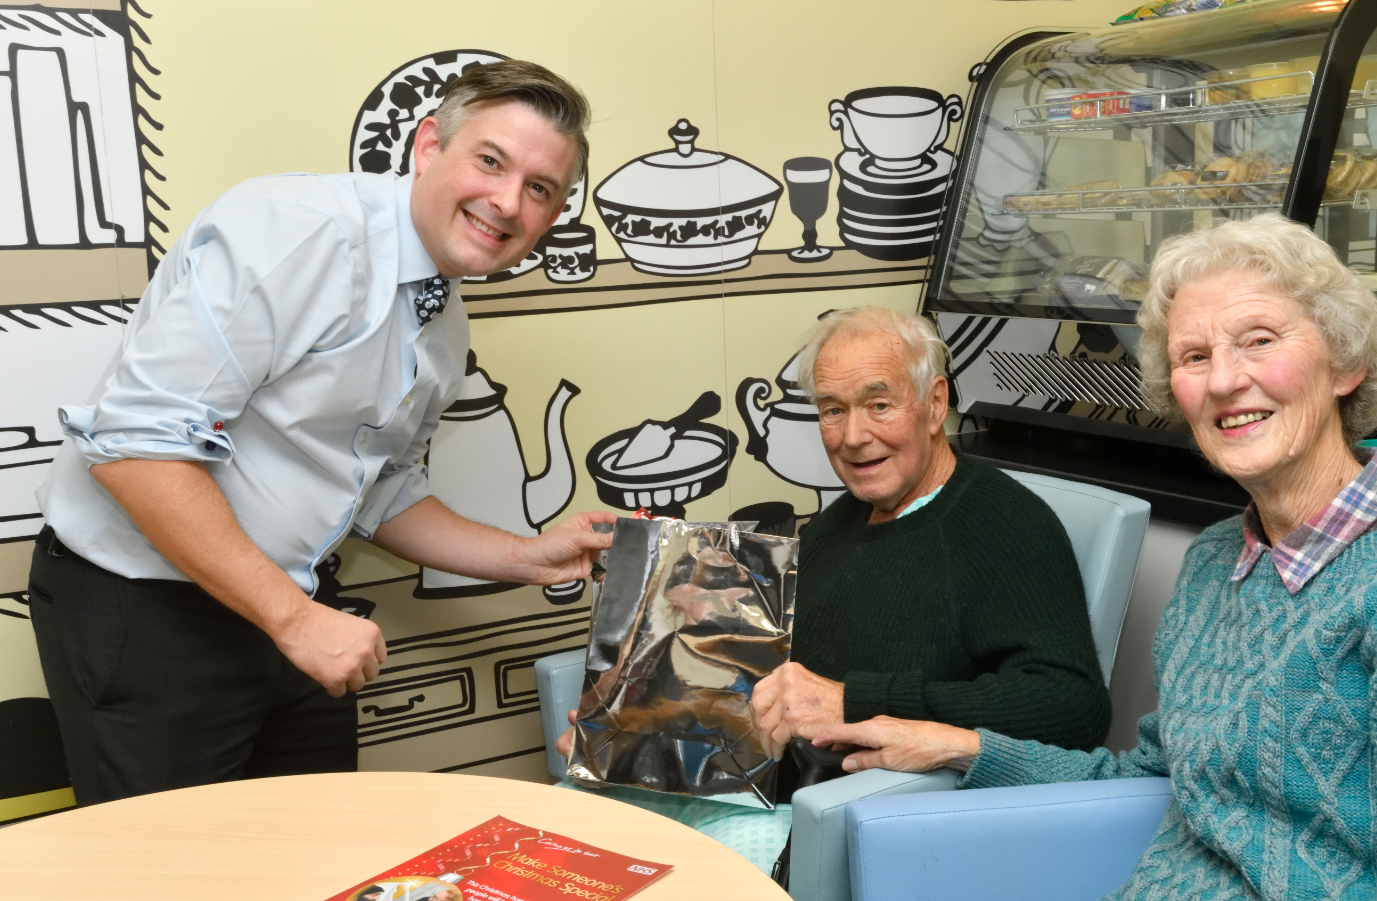 Jon visits Leicester Royal Infirmary in support of the 'Making Christmas Special' campaign - Friday November 30 2018